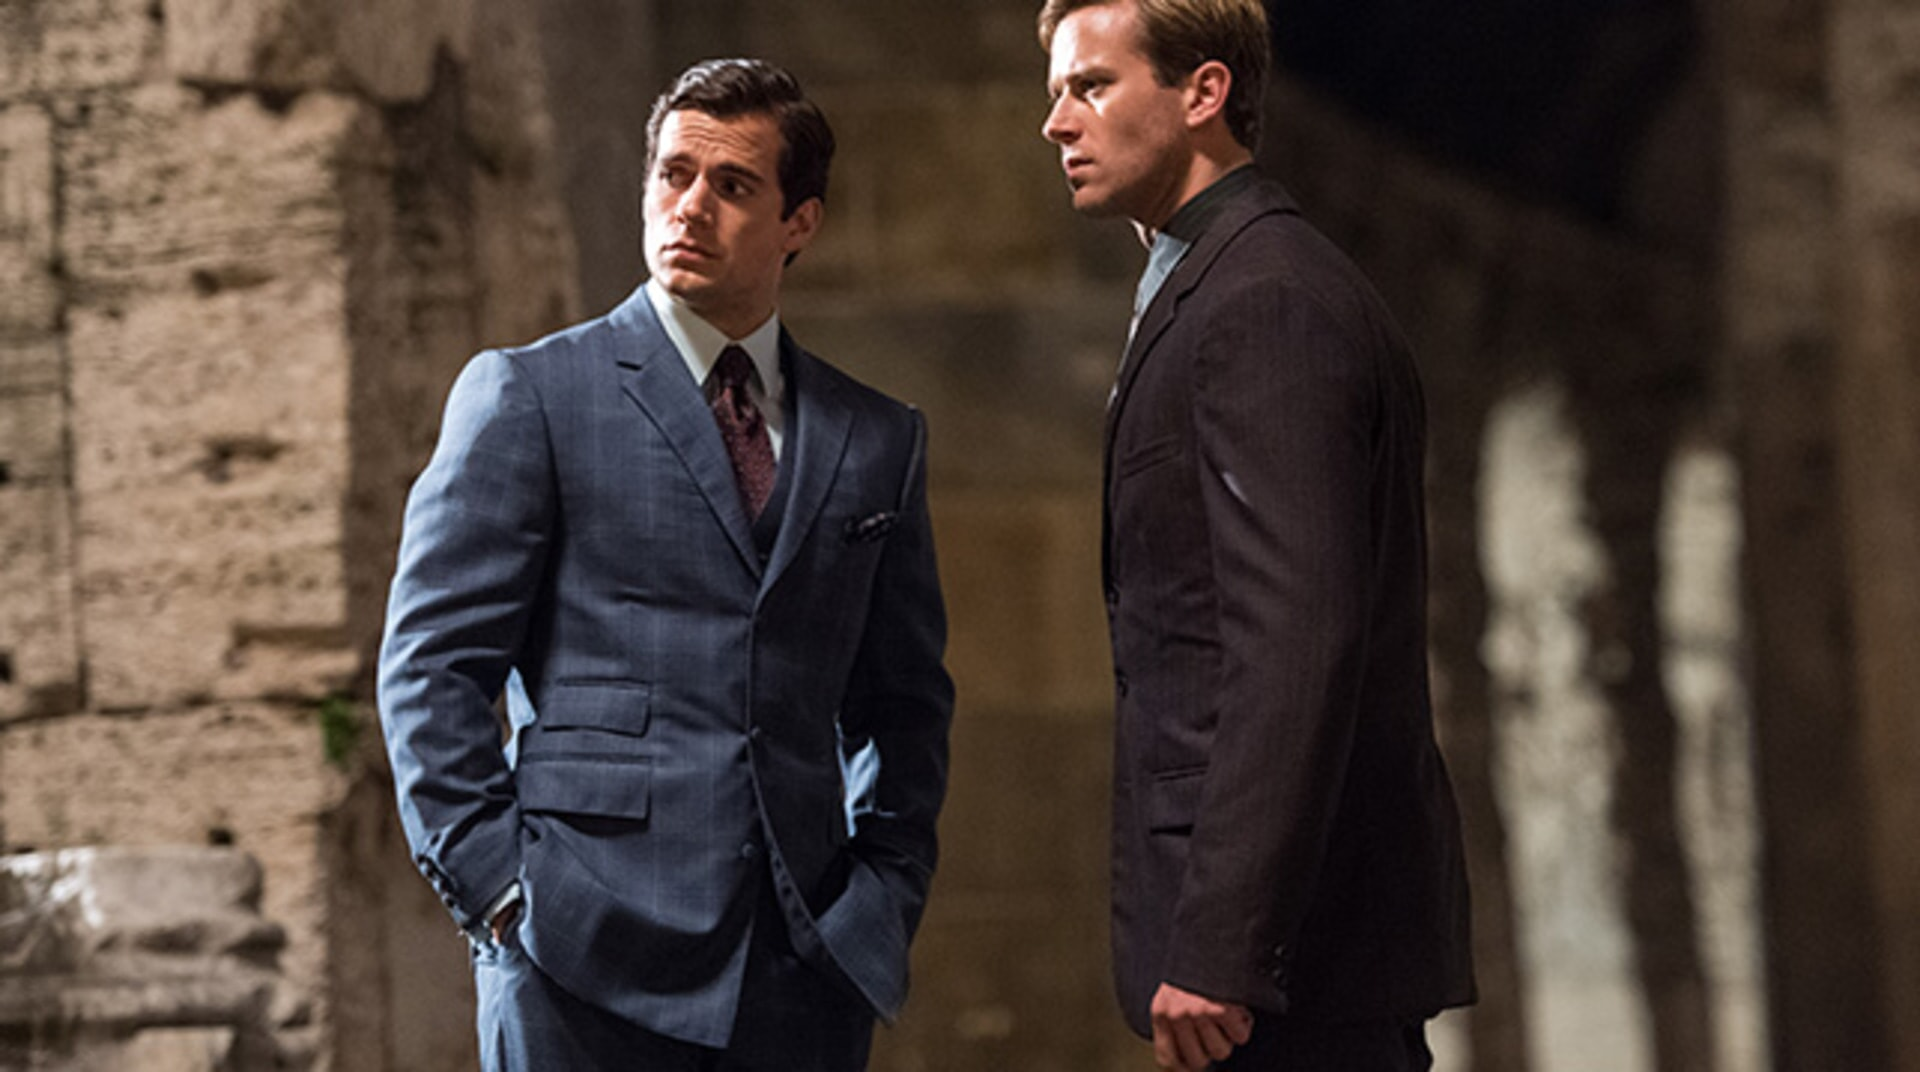 The Man From U.N.C.L.E. - Image 17